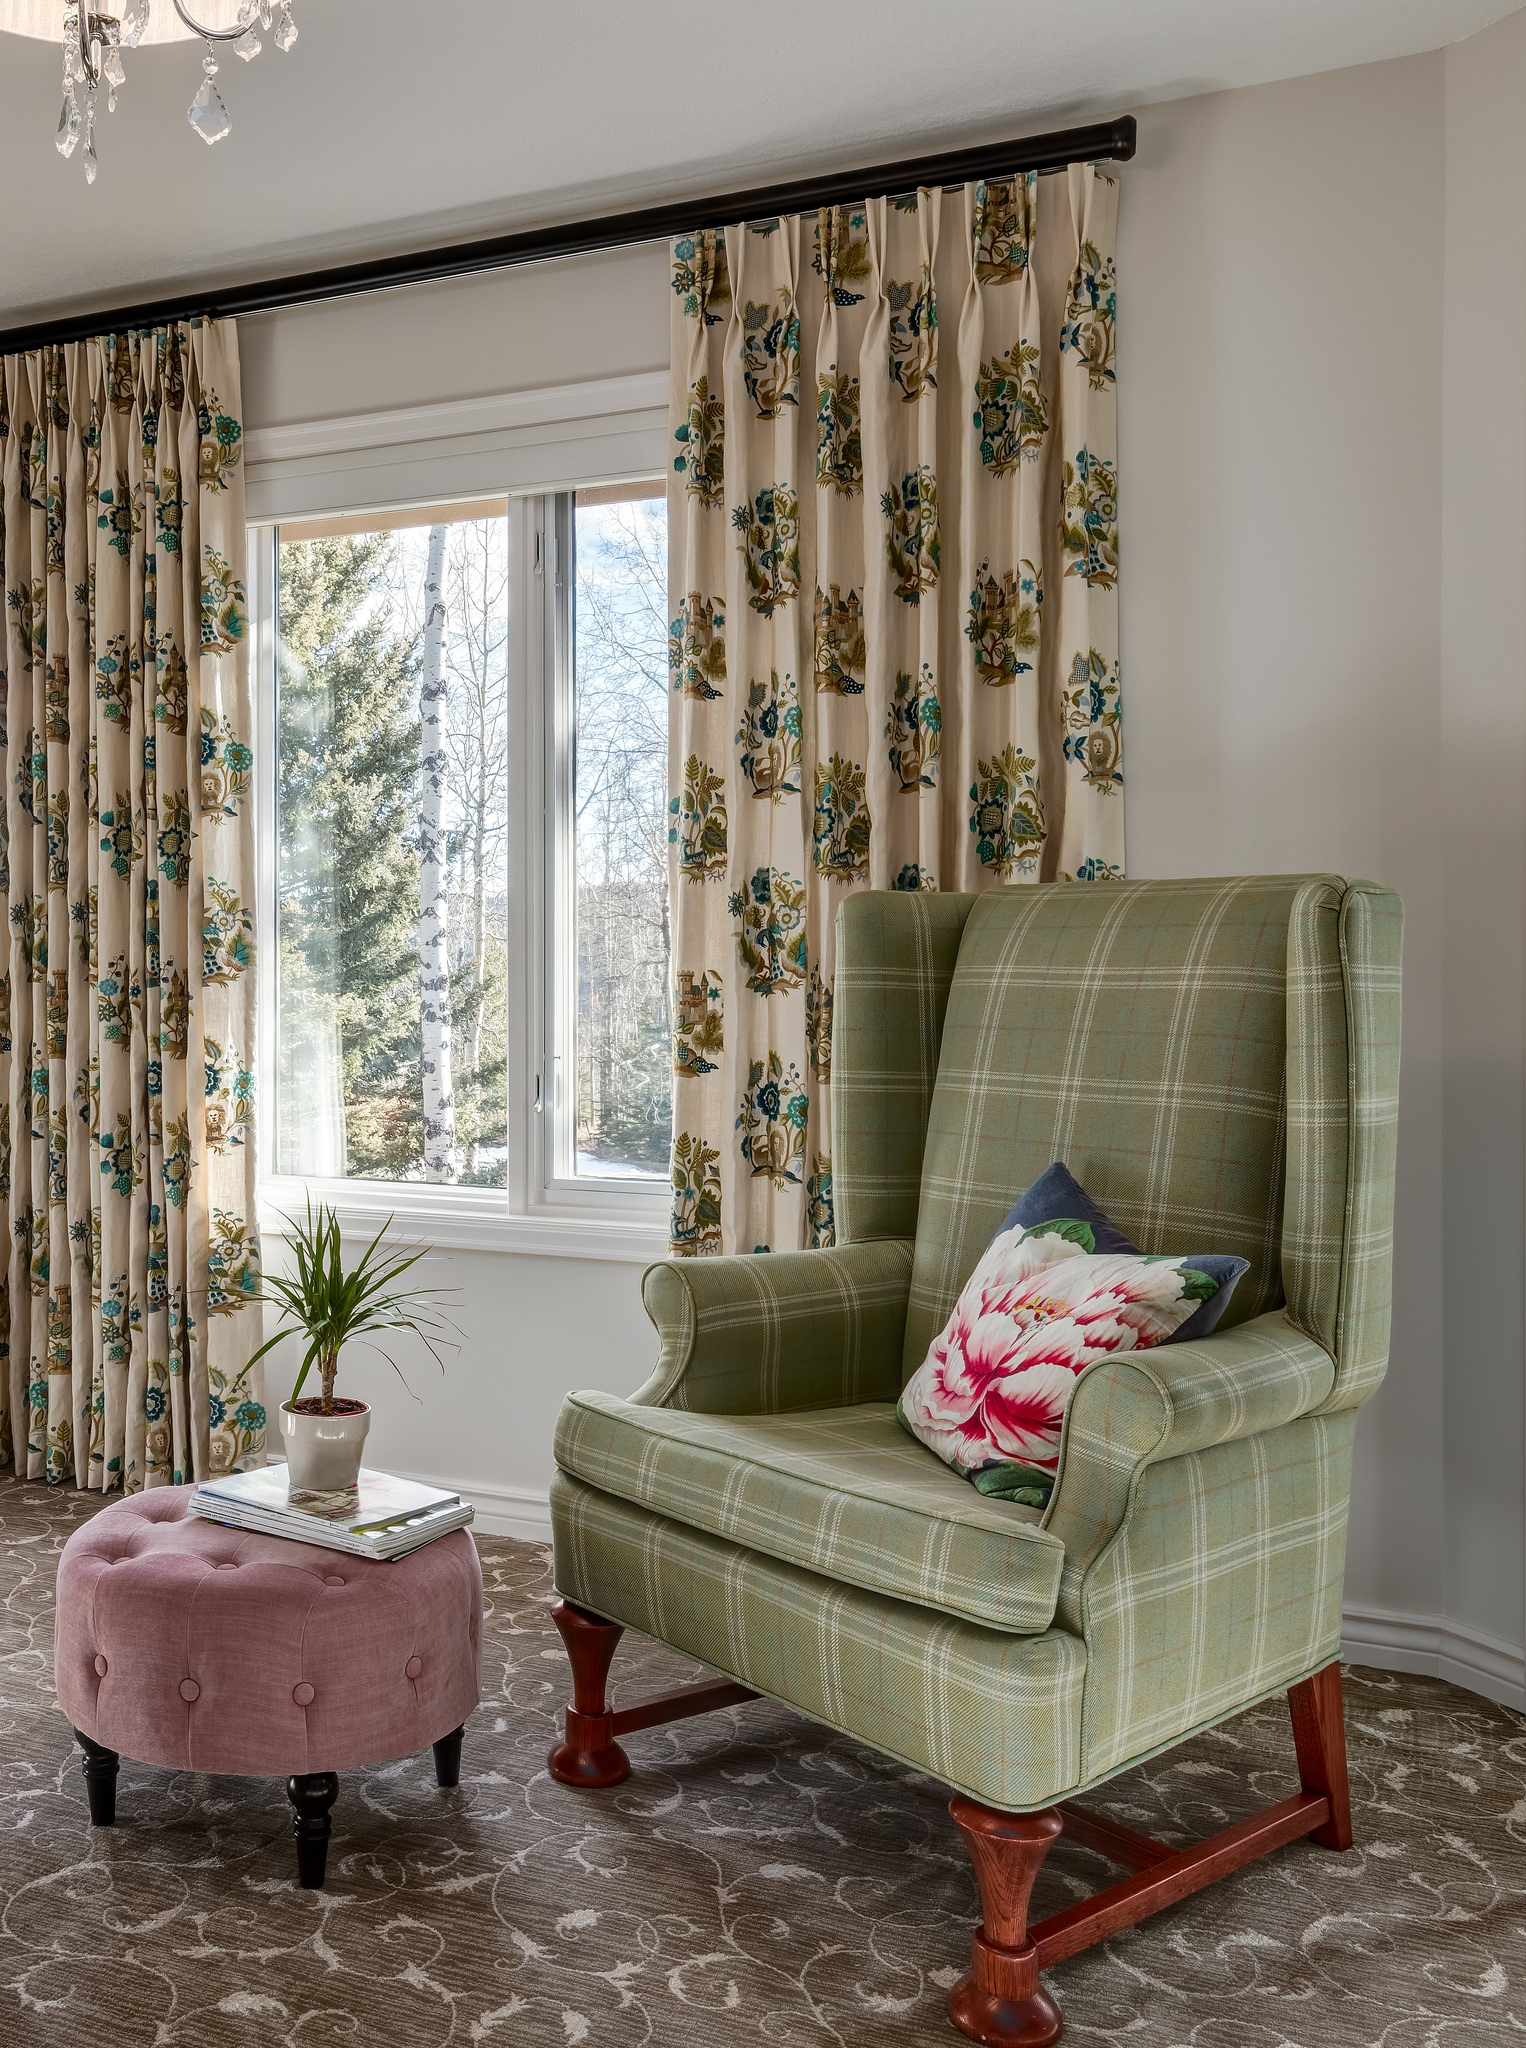 plaid chair in soft greens with a hint of pink accent nicely the colefax and fowler draperies and pattern wall to wall carpeting